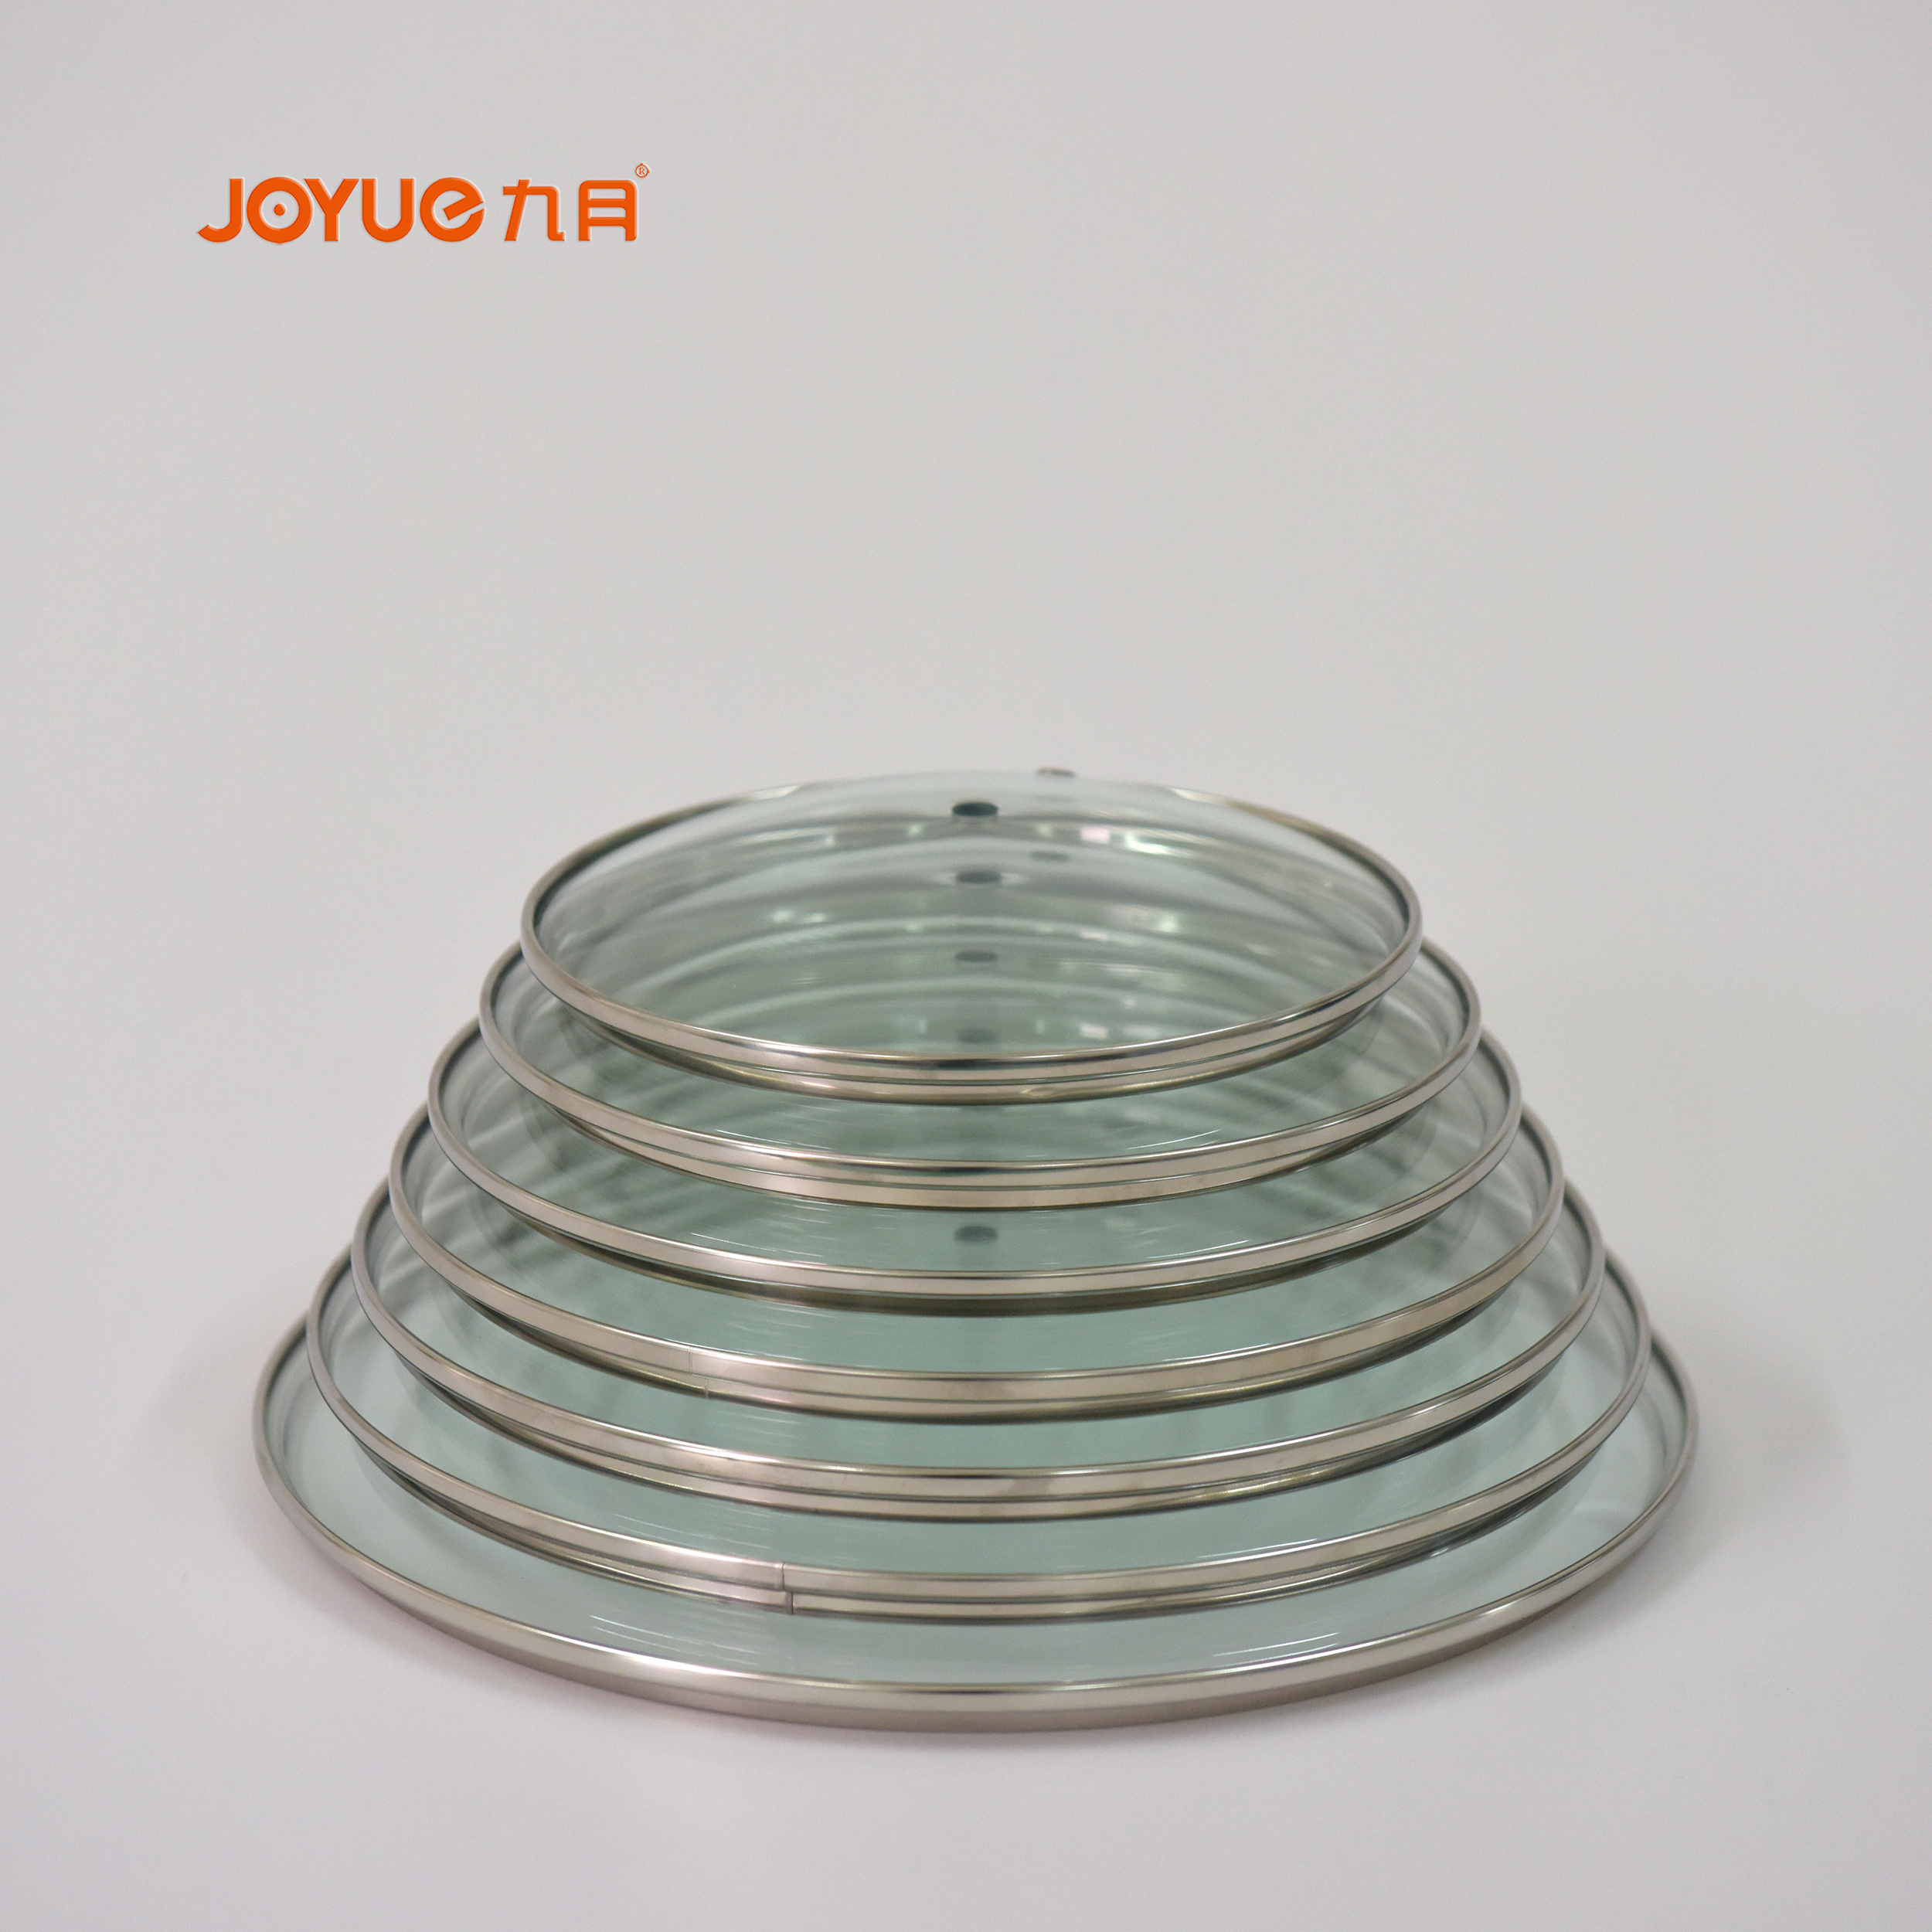 tempered glass cooking pot lid with stainless steel ring